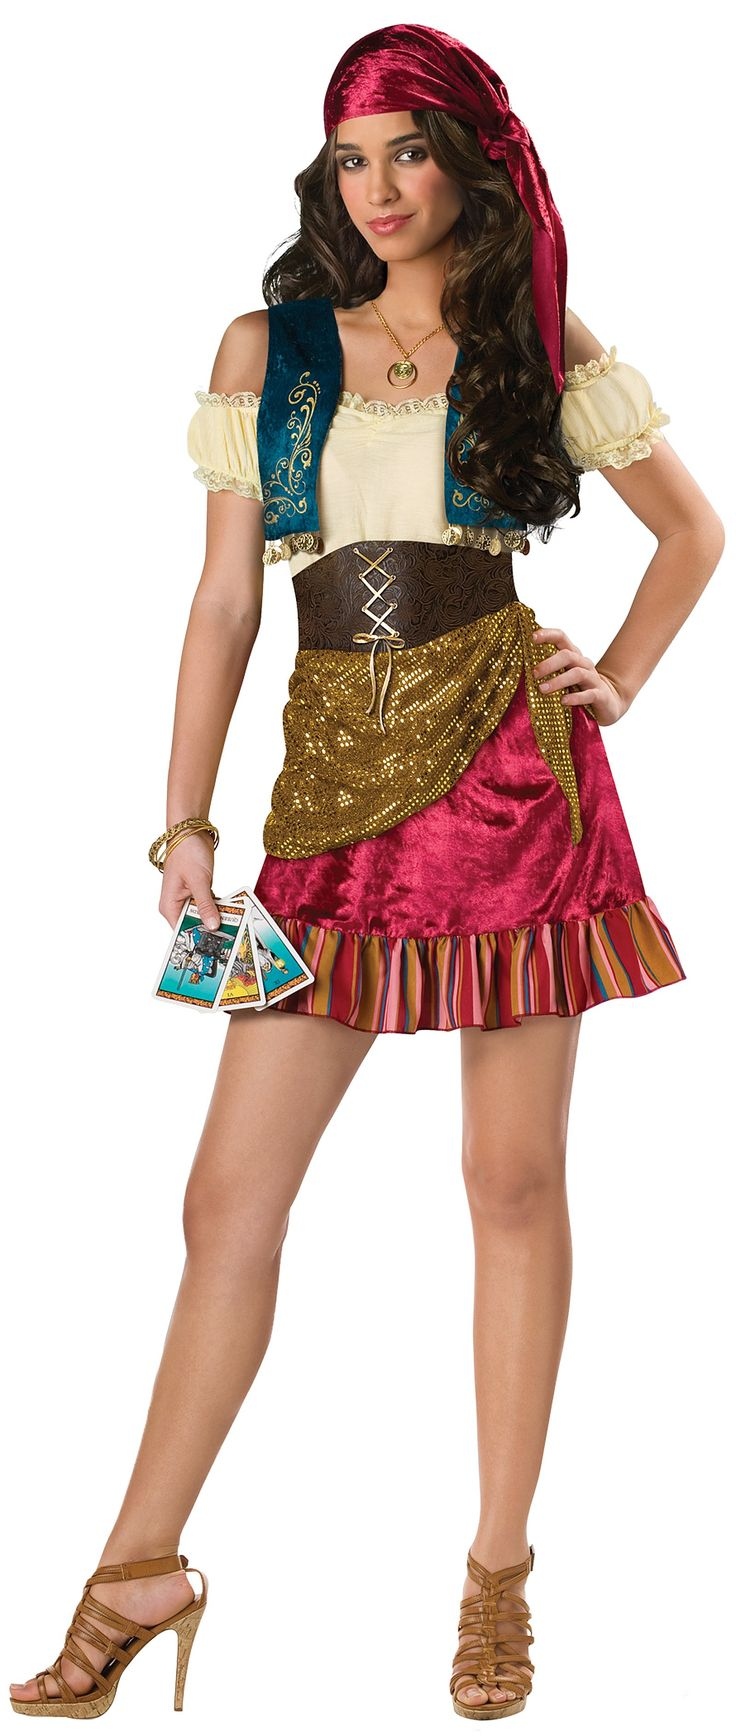 Gypsy Teen Costume from Buycostumes.com